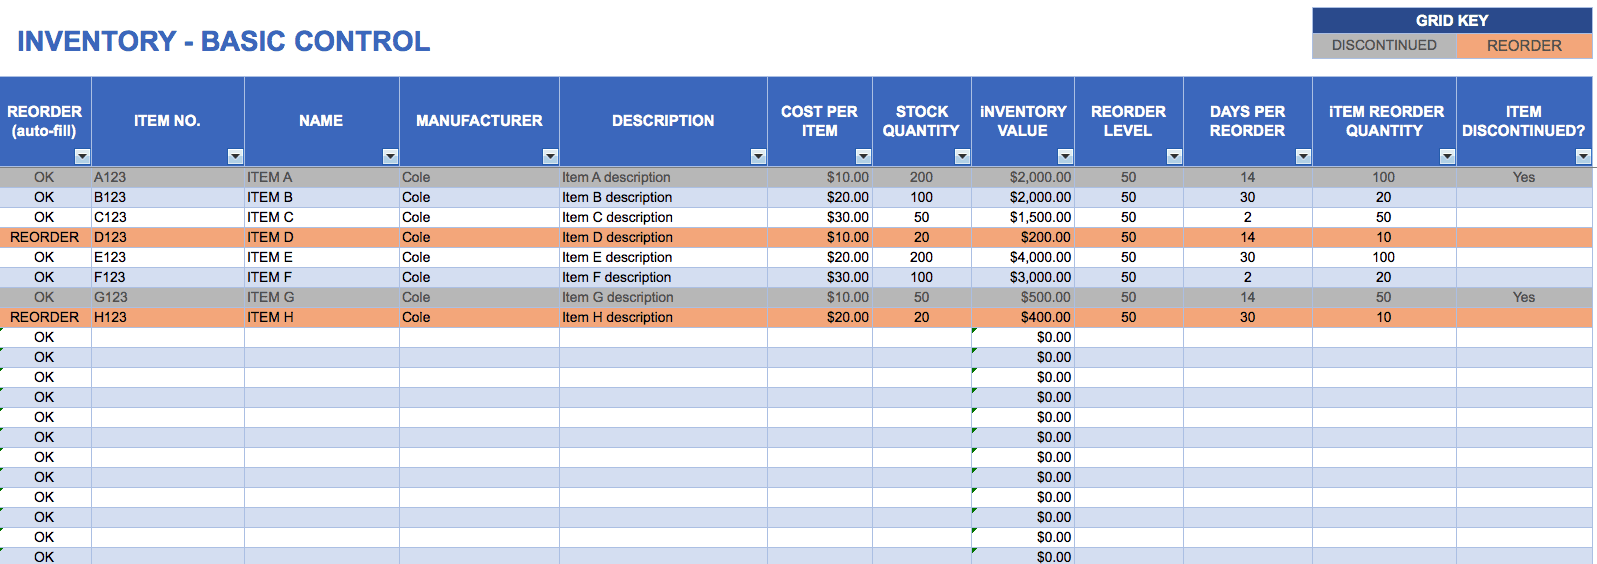 Free Excel Inventory Templates - Invoice inventory excel for service business